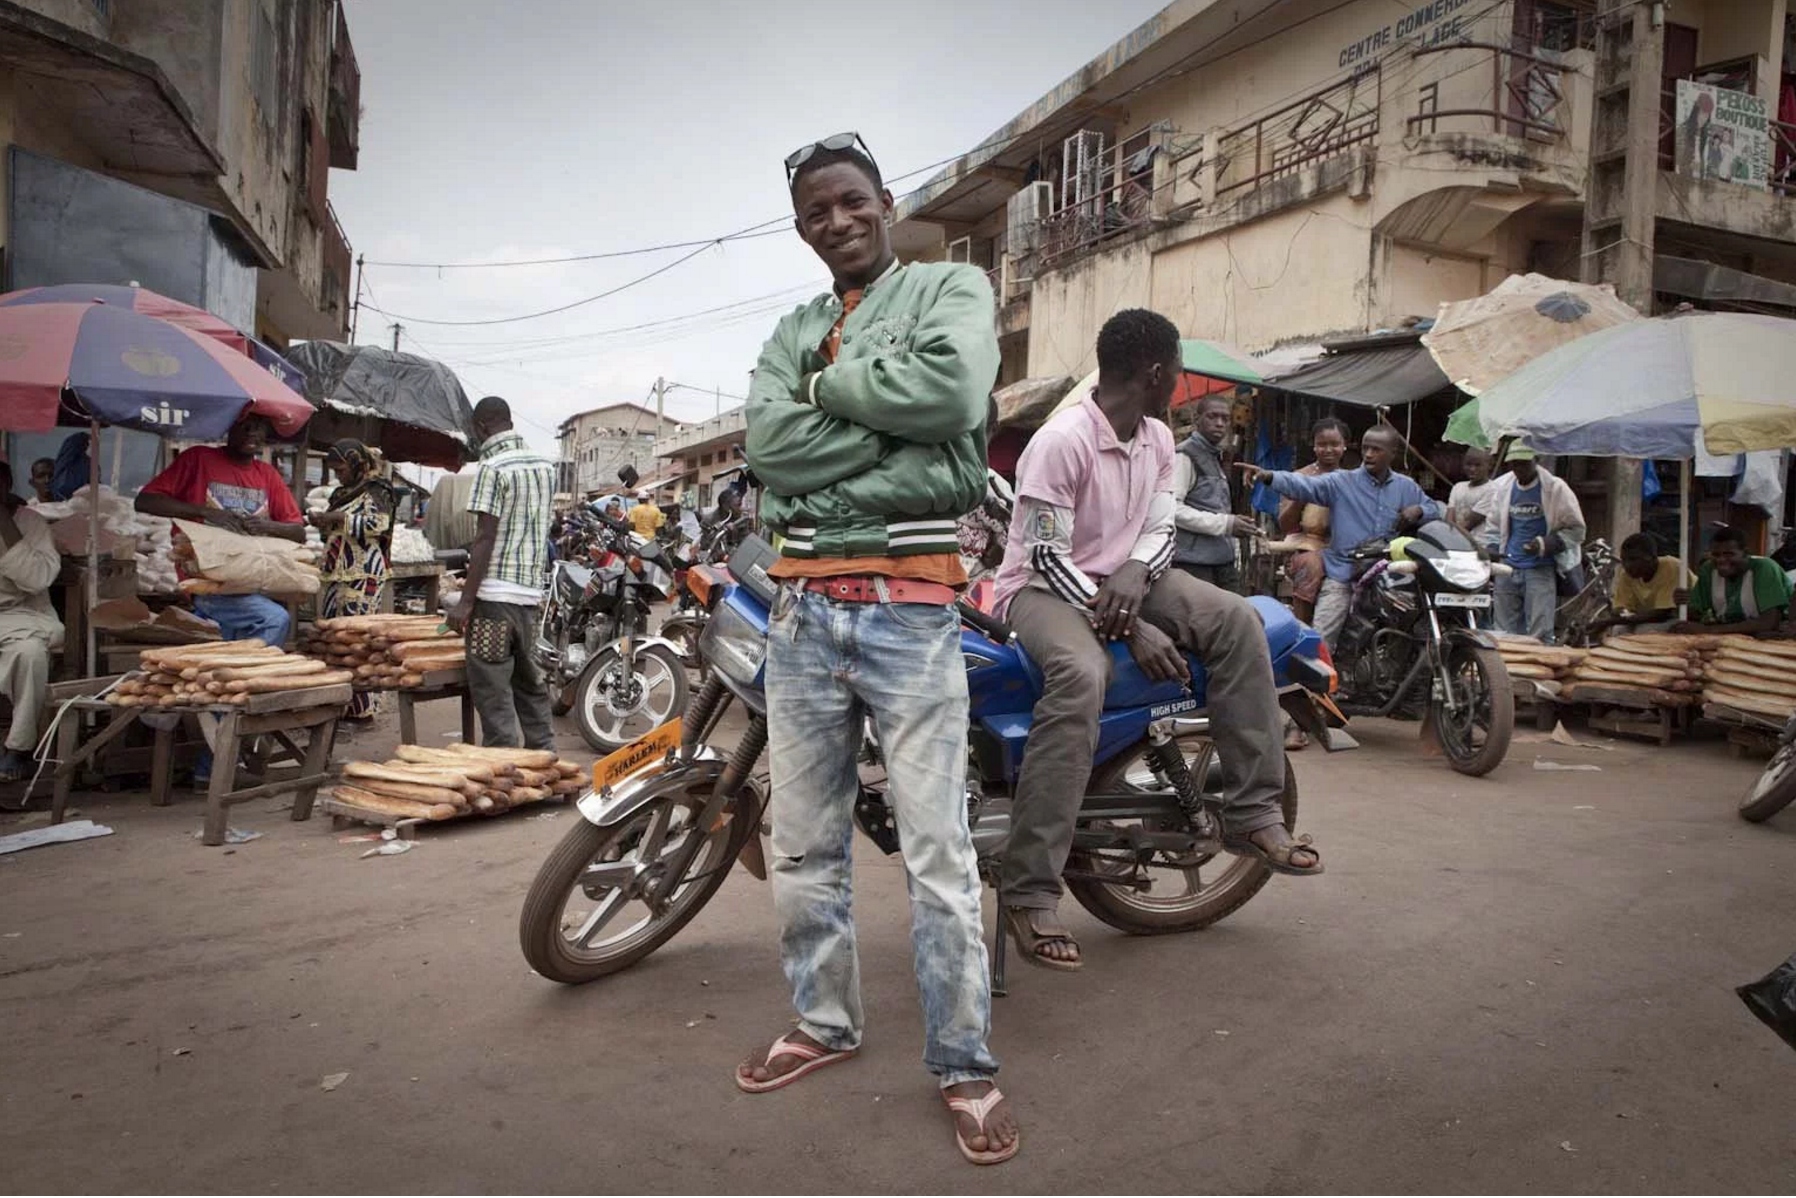 Moto Taxi Boys, Labé, Fouta Djallon, Guinea Conakry. Image ©Jason Florio from the River Gambia Expedition